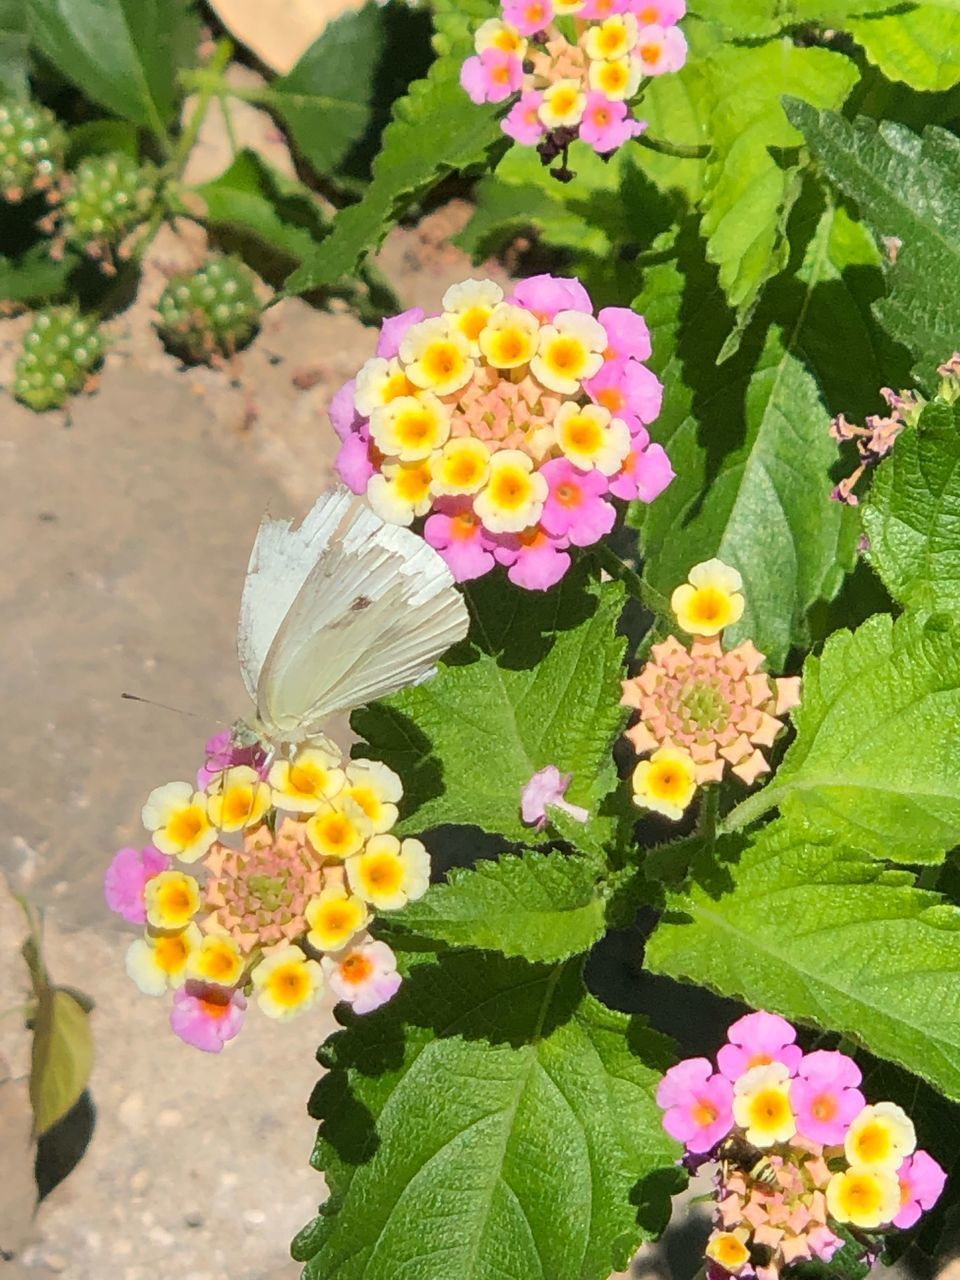 flower, plant, flowering plant, beauty in nature, freshness, vulnerability, fragility, growth, flower head, petal, inflorescence, lantana, nature, pink color, multi colored, leaf, close-up, plant part, day, high angle view, no people, outdoors, springtime, butterfly - insect